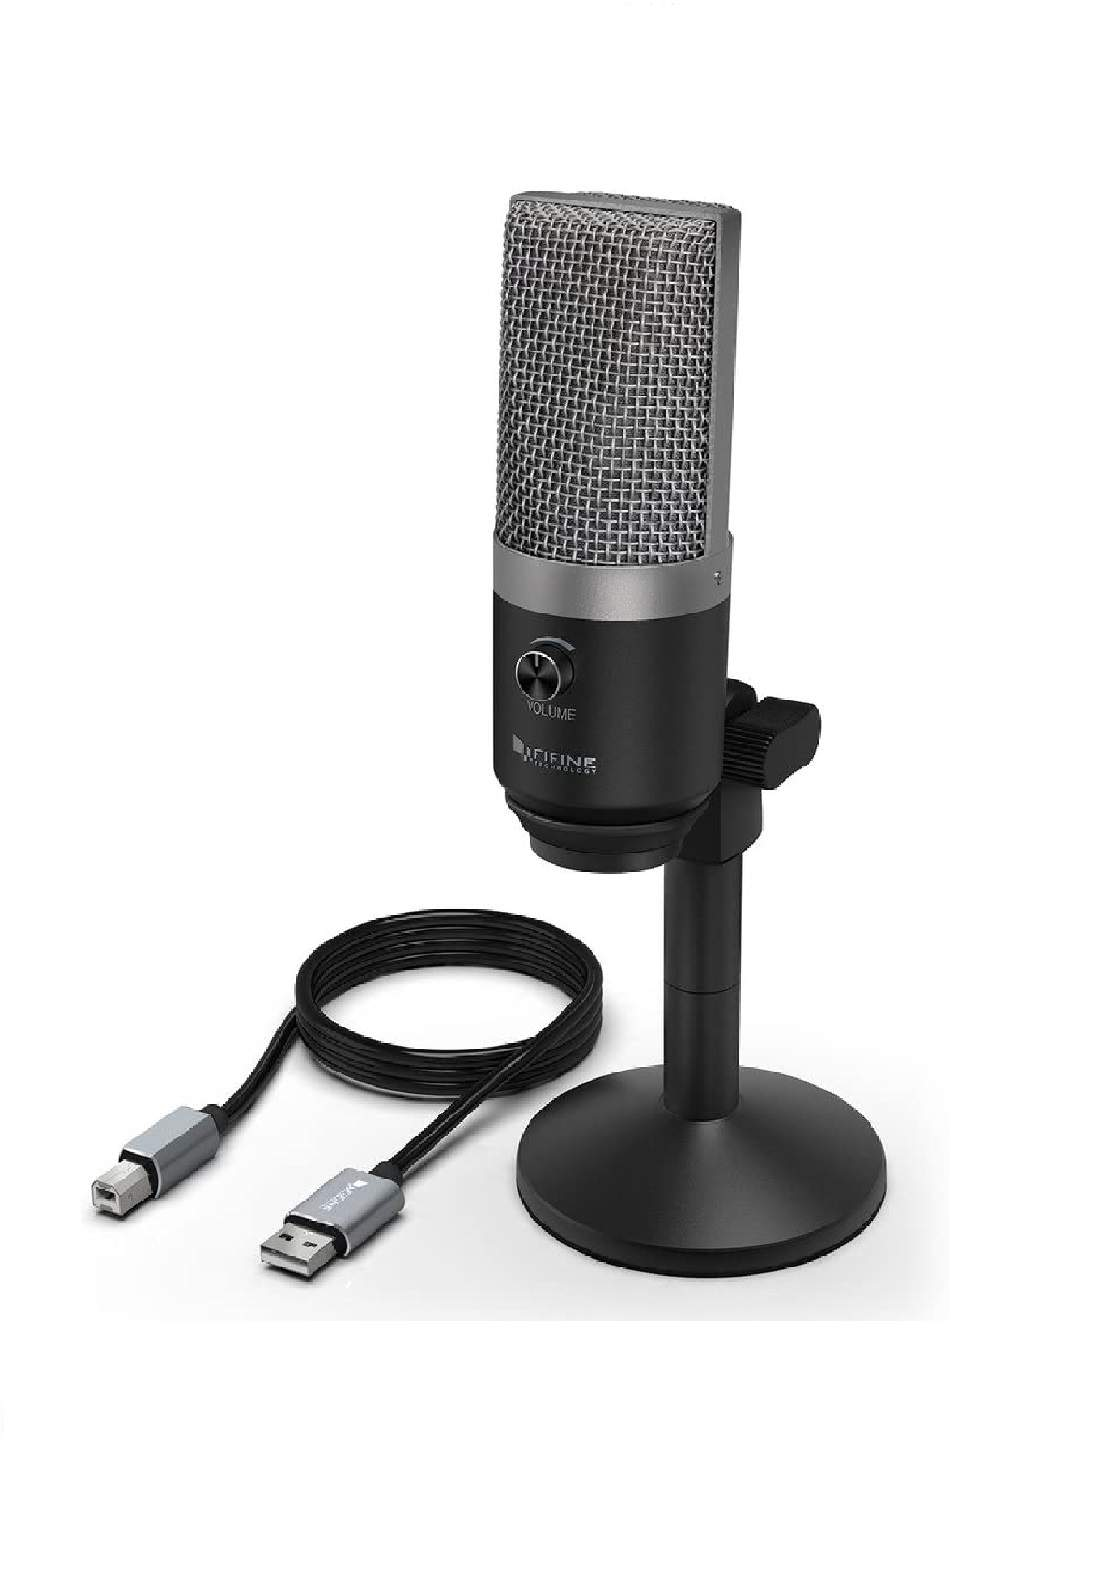 Fifine K670 USB Microphone for Computers Recording -Black- ميكرفون